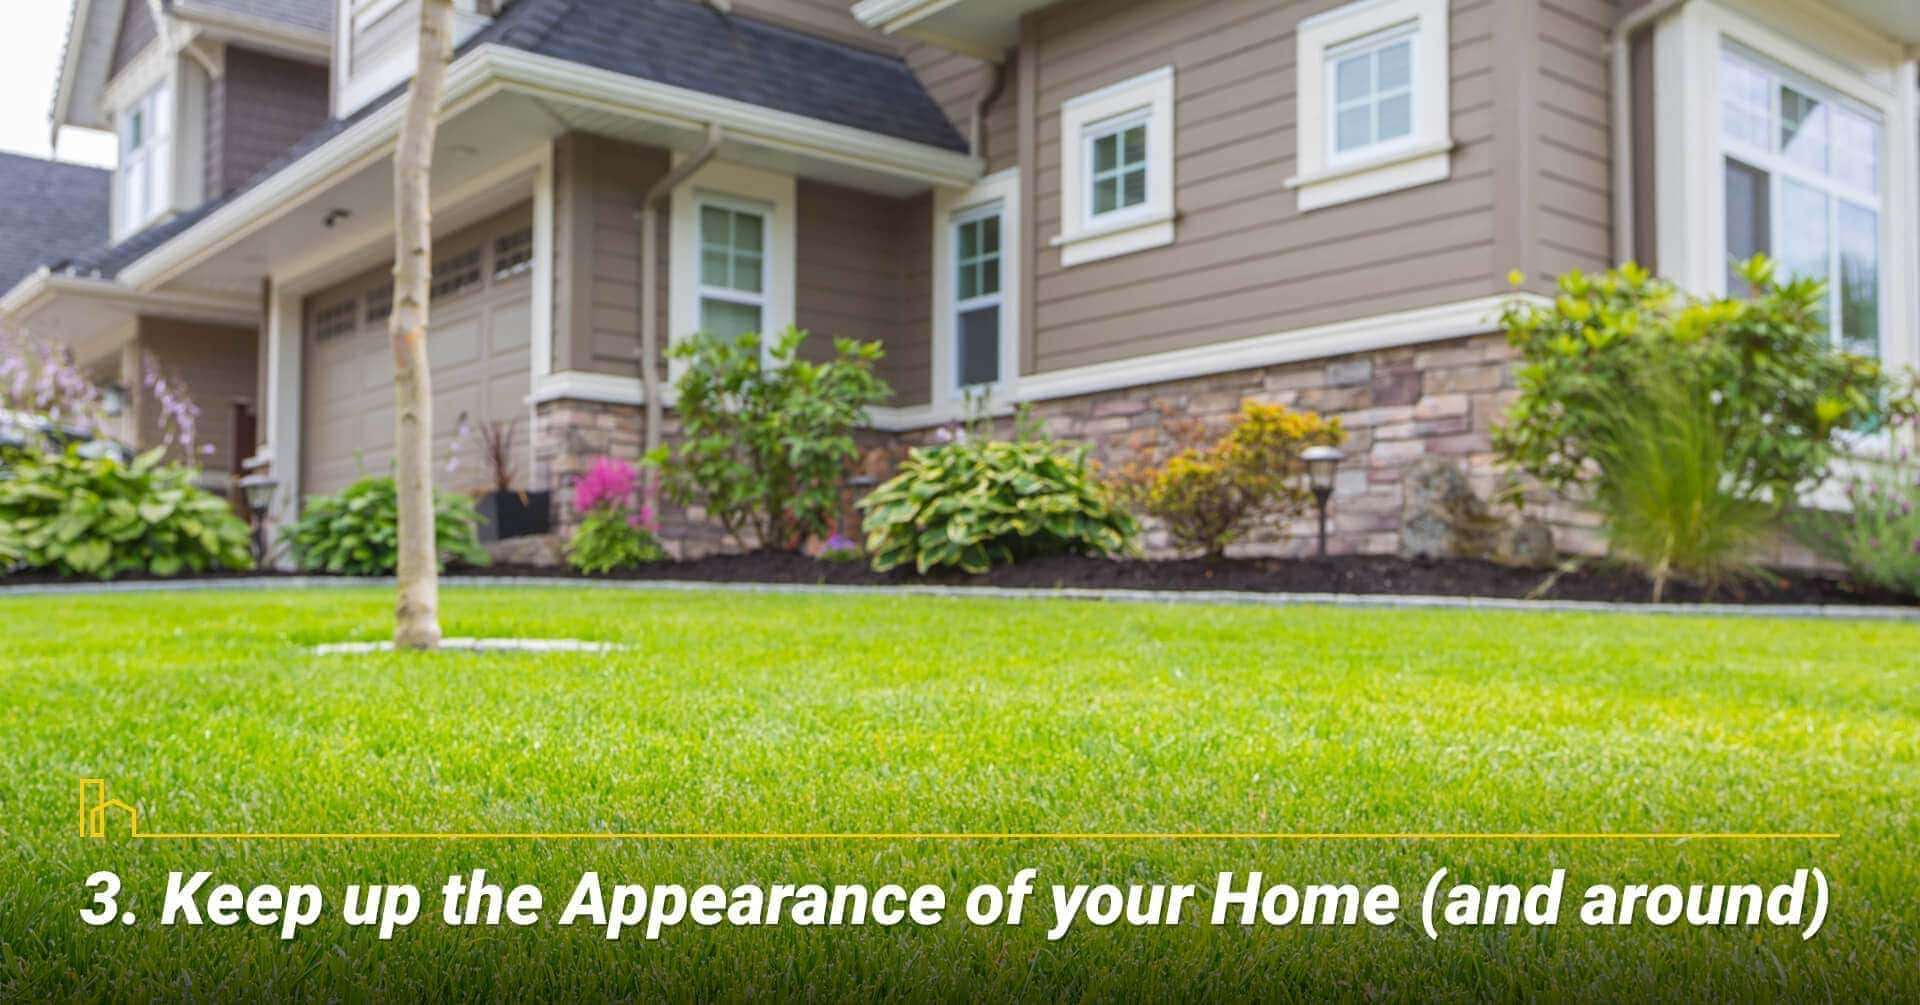 Keep up the Appearance of your Home (and around)